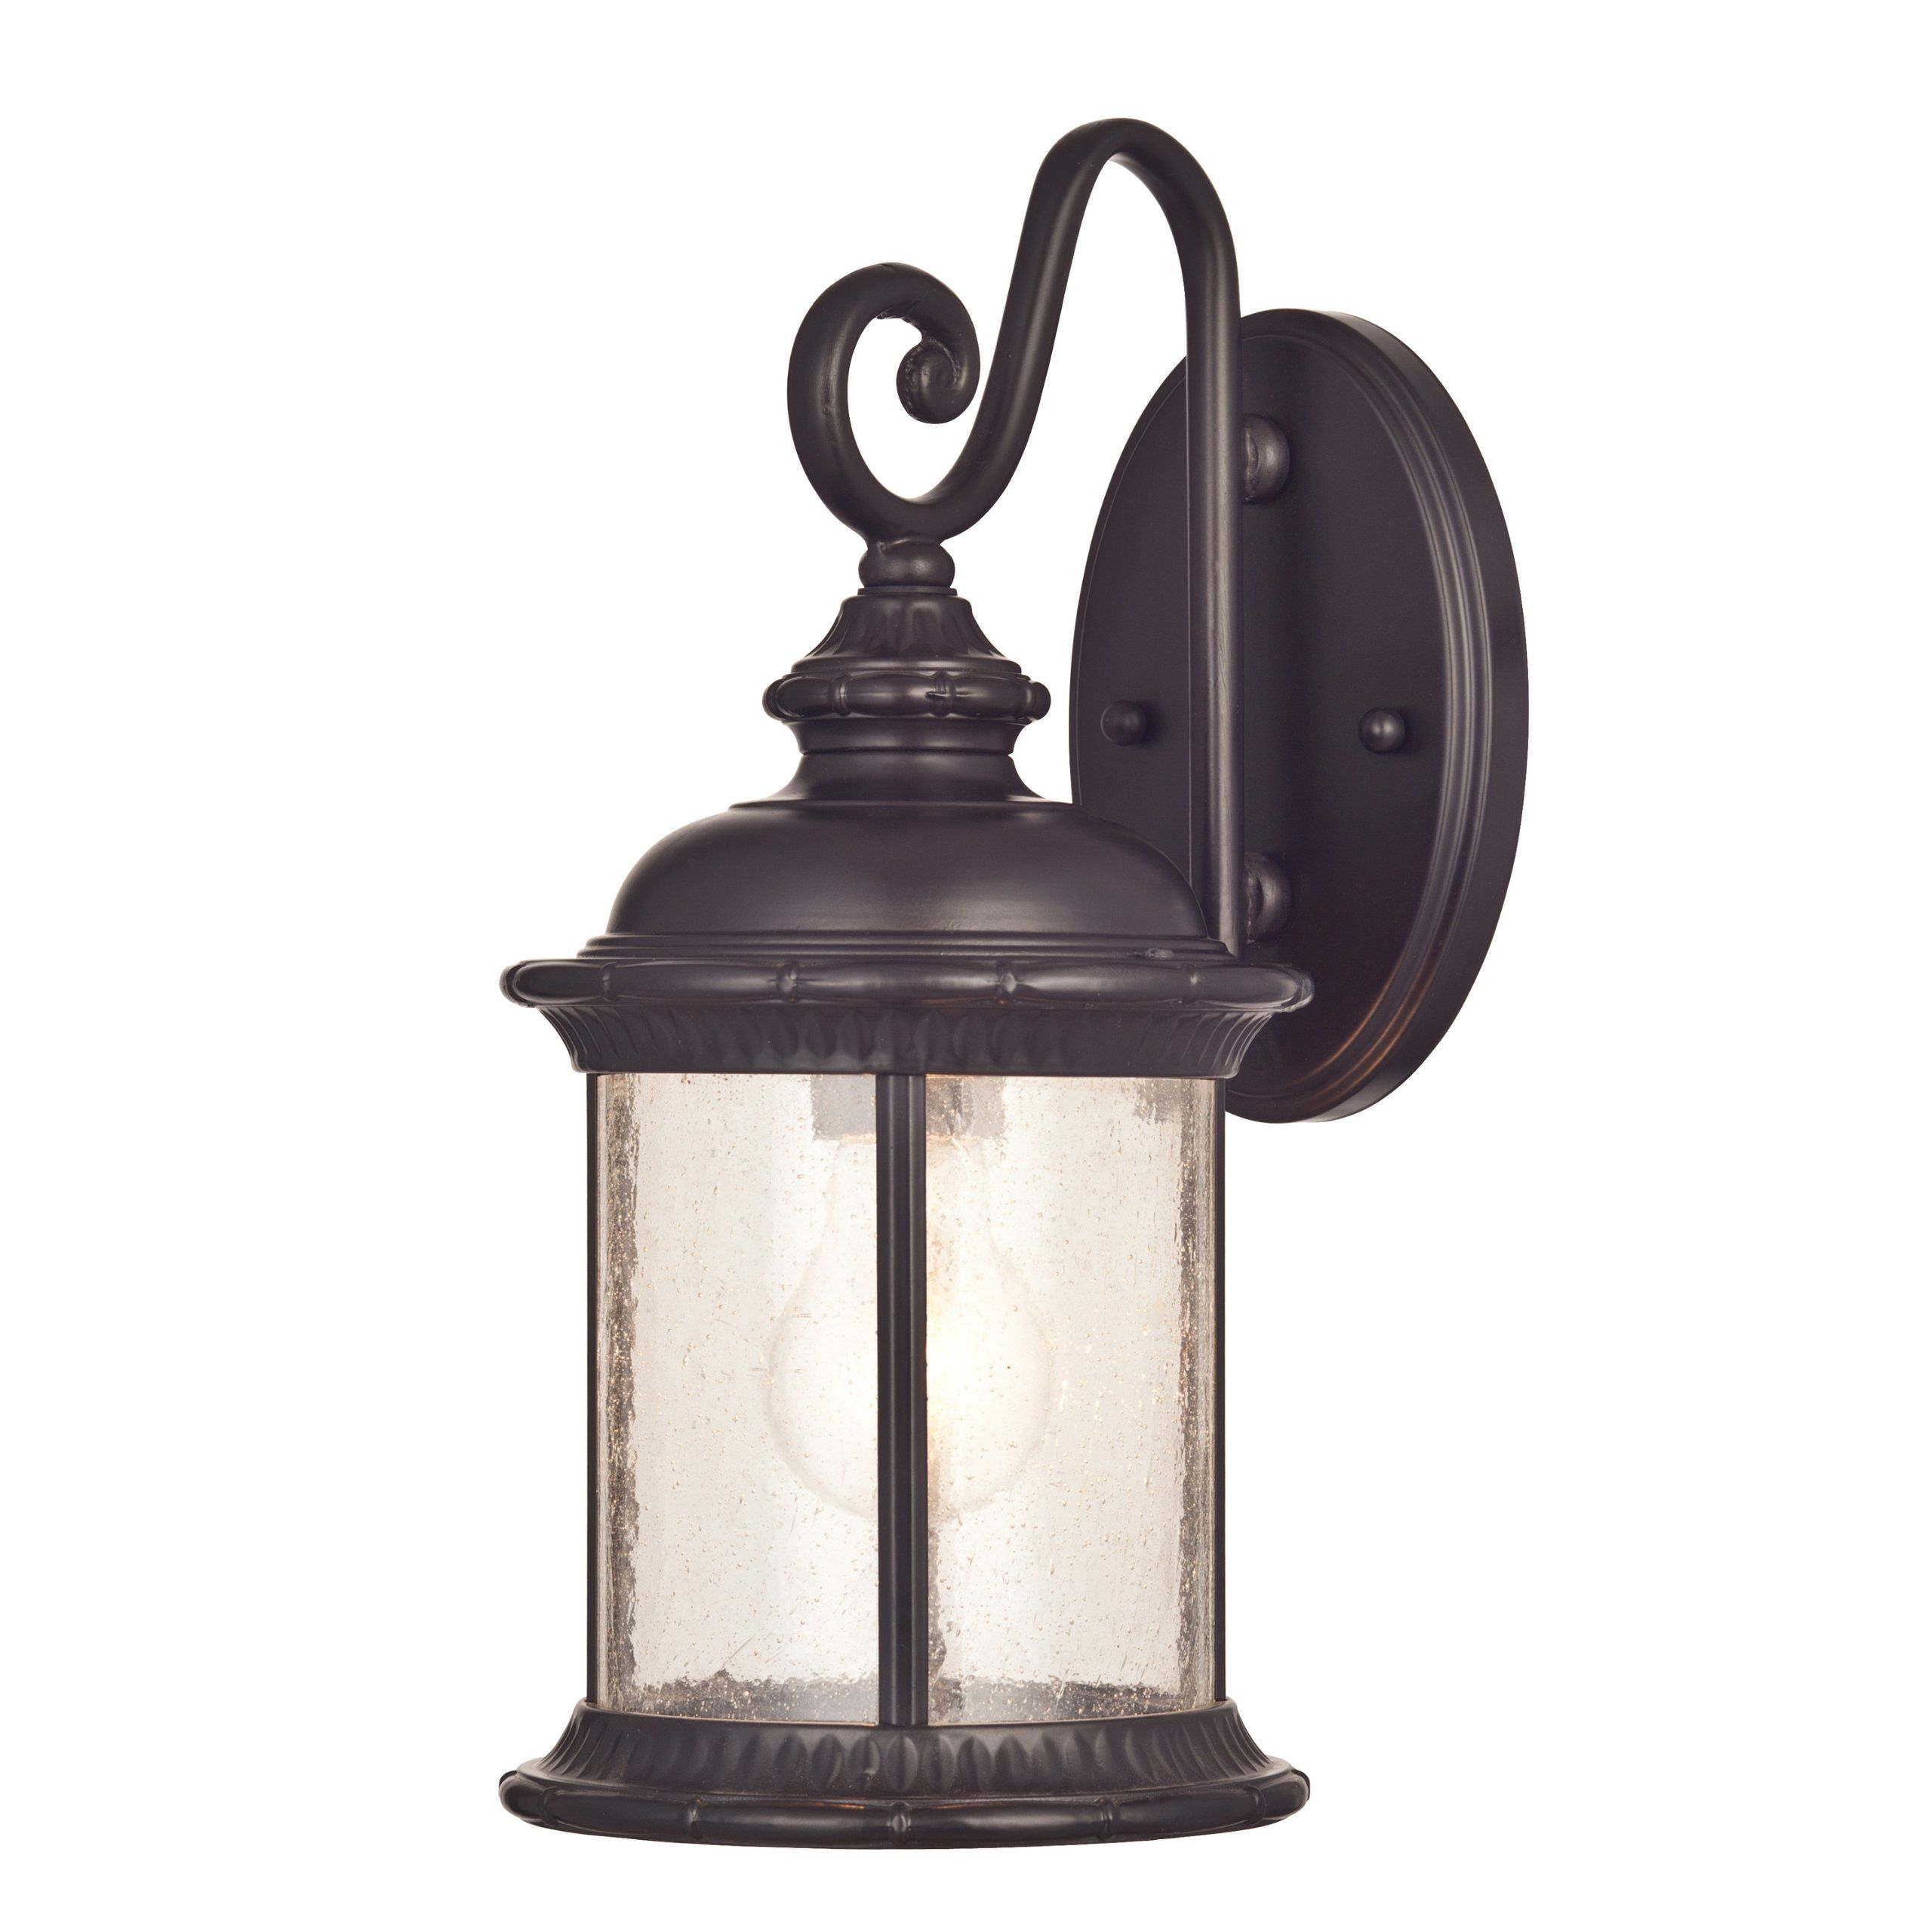 Westinghouse New Haven e Light Exterior Wall Lantern on